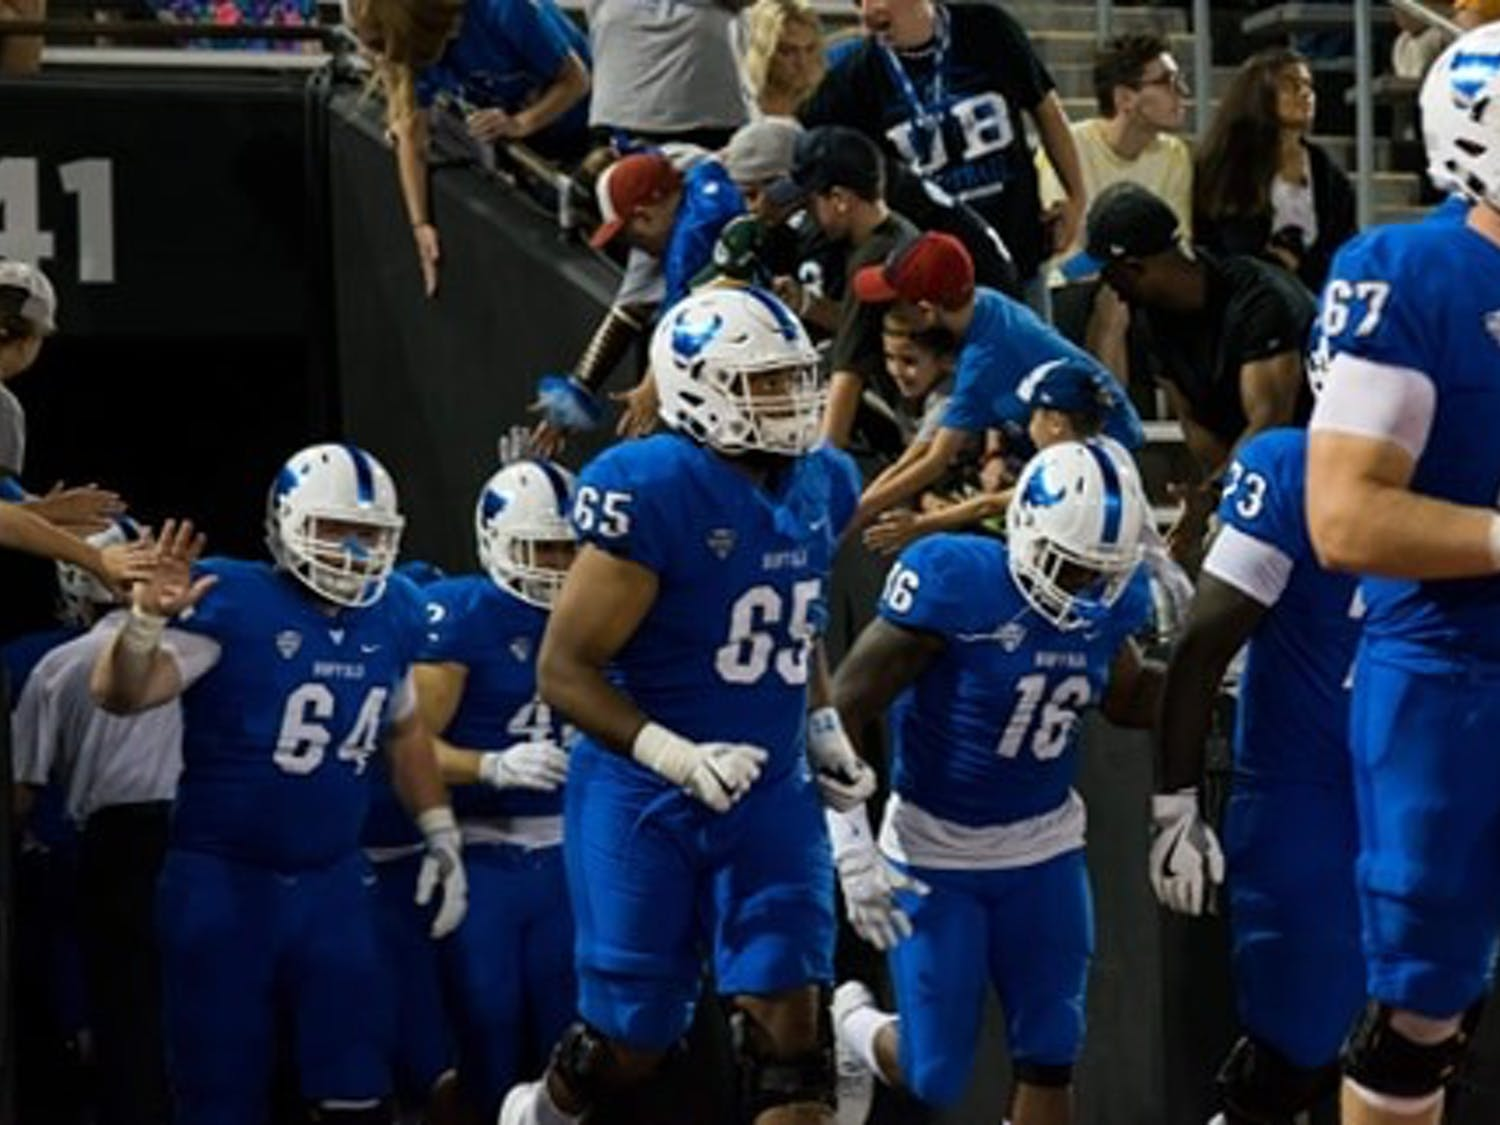 Former UB left guard Tomas Jack-Kurdyla was selected fourth overall in the 2020 CFL Draft. Jack-Kurdyla attributed to UB's ranking with 3,256 yards during his last season.